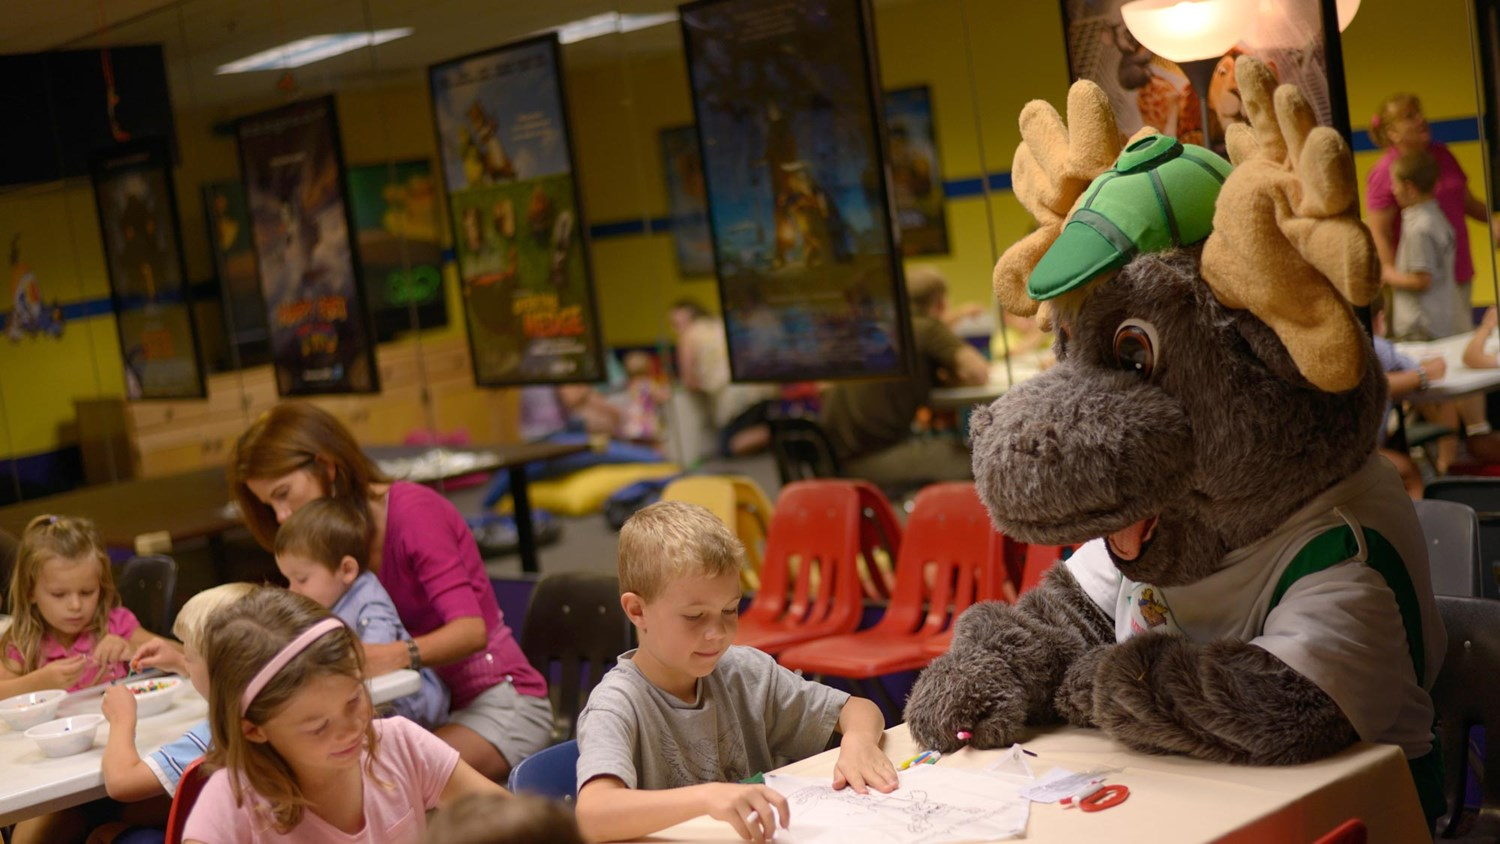 Bruce the Moose helping kids draw pictures